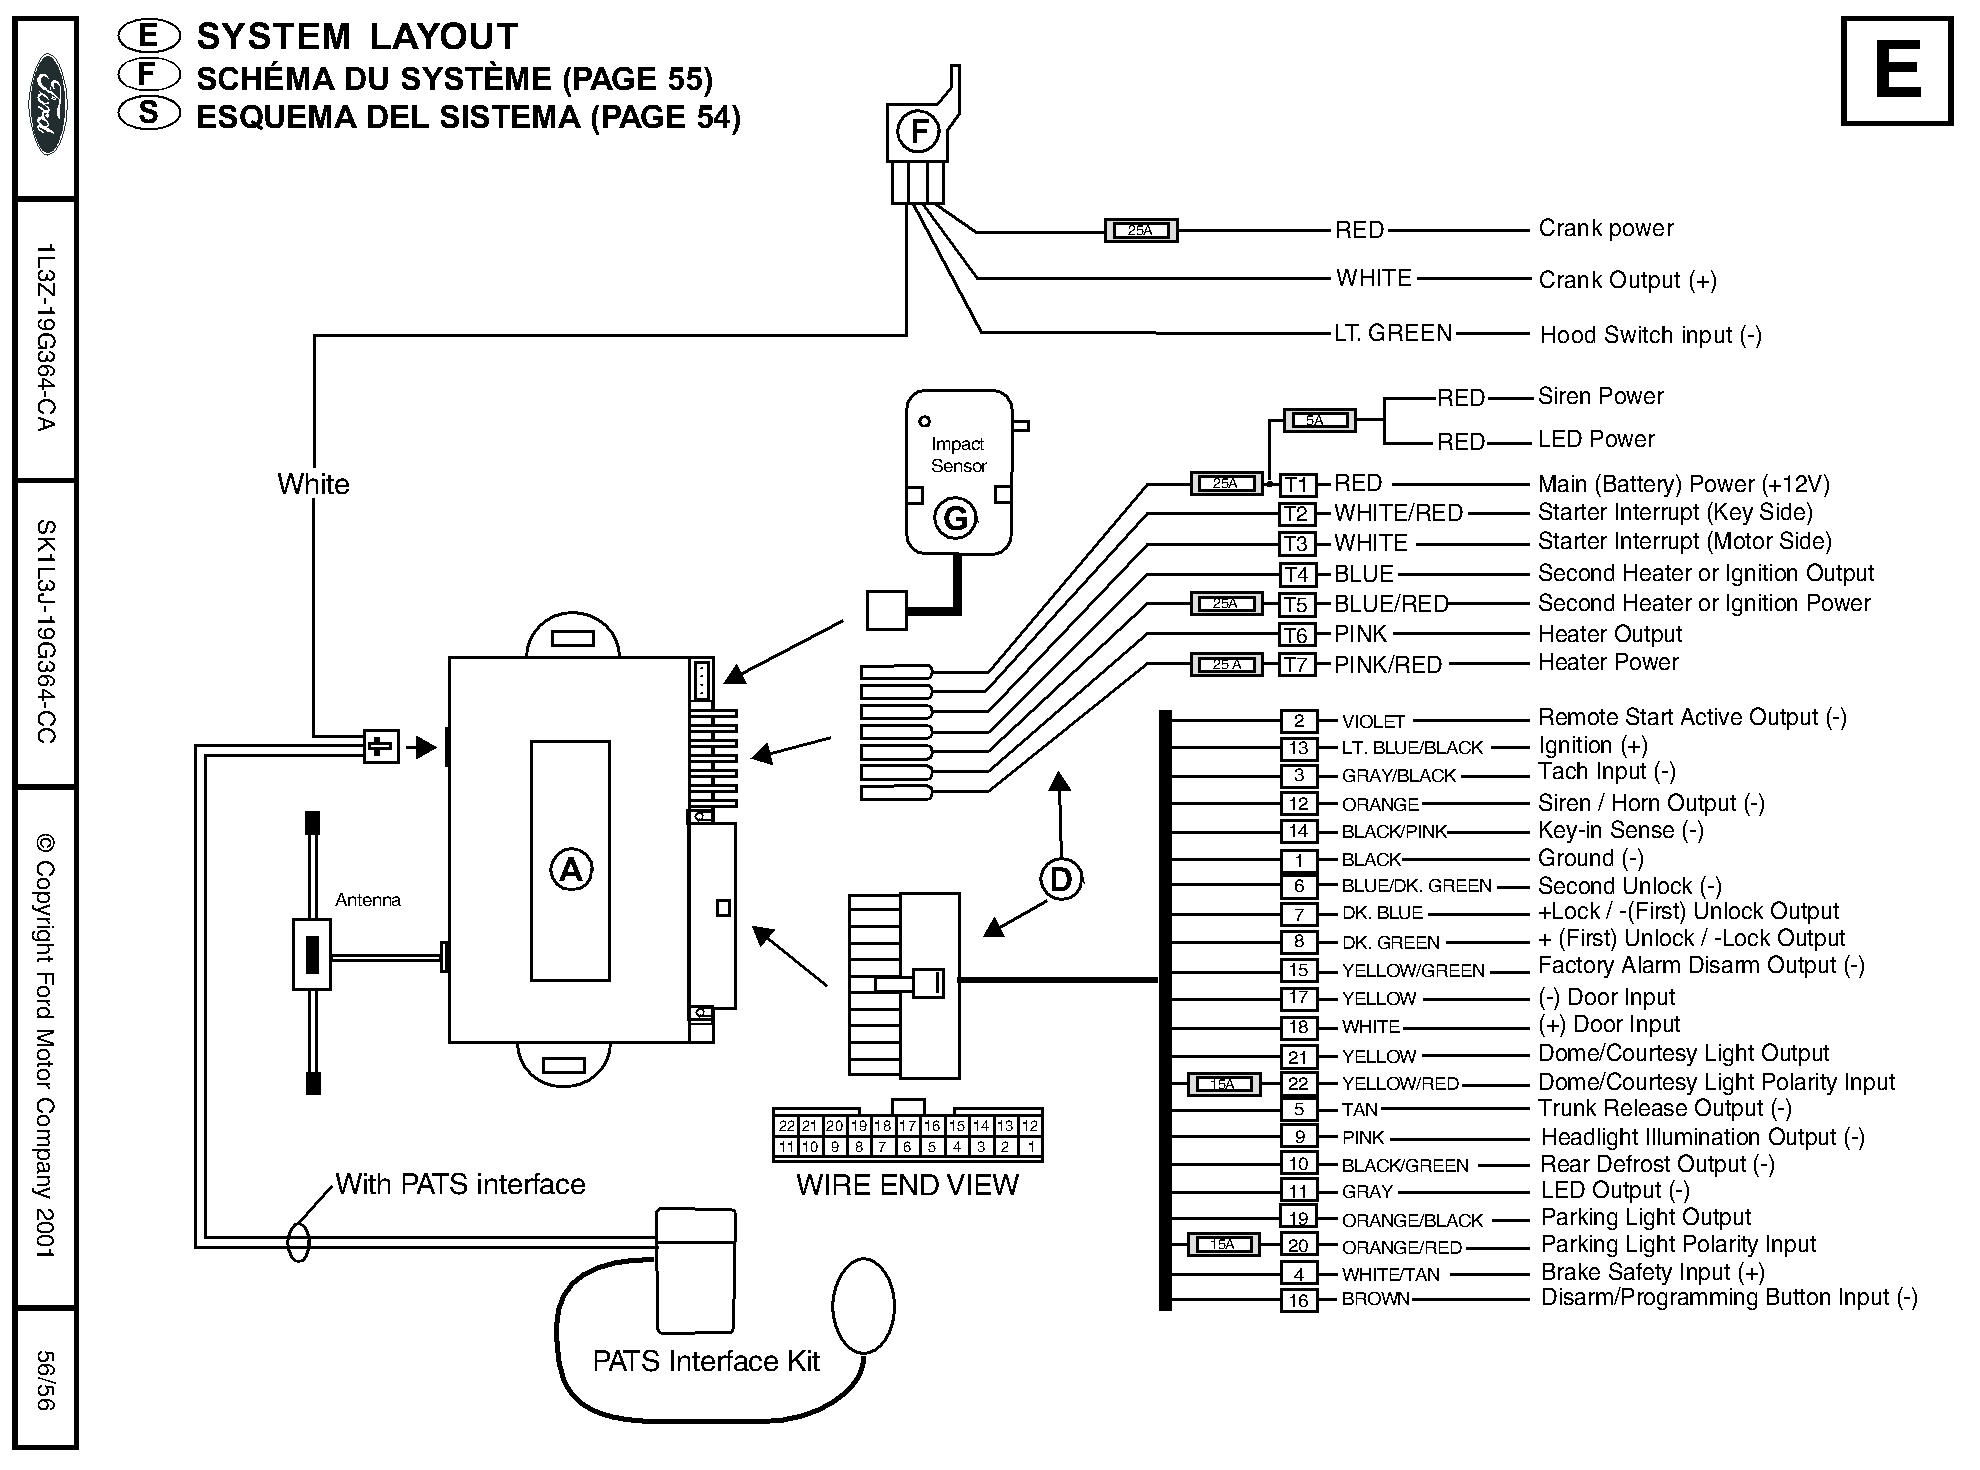 [DVZP_7254]   DIAGRAM] Bulldog Remote Starter Wiring Diagram FULL Version HD Quality Wiring  Diagram - TCMOTOGP.JTNETTOYAGE.FR | Bulldog Remote Starter Wiring Diagram Caravan |  | Diagram Database